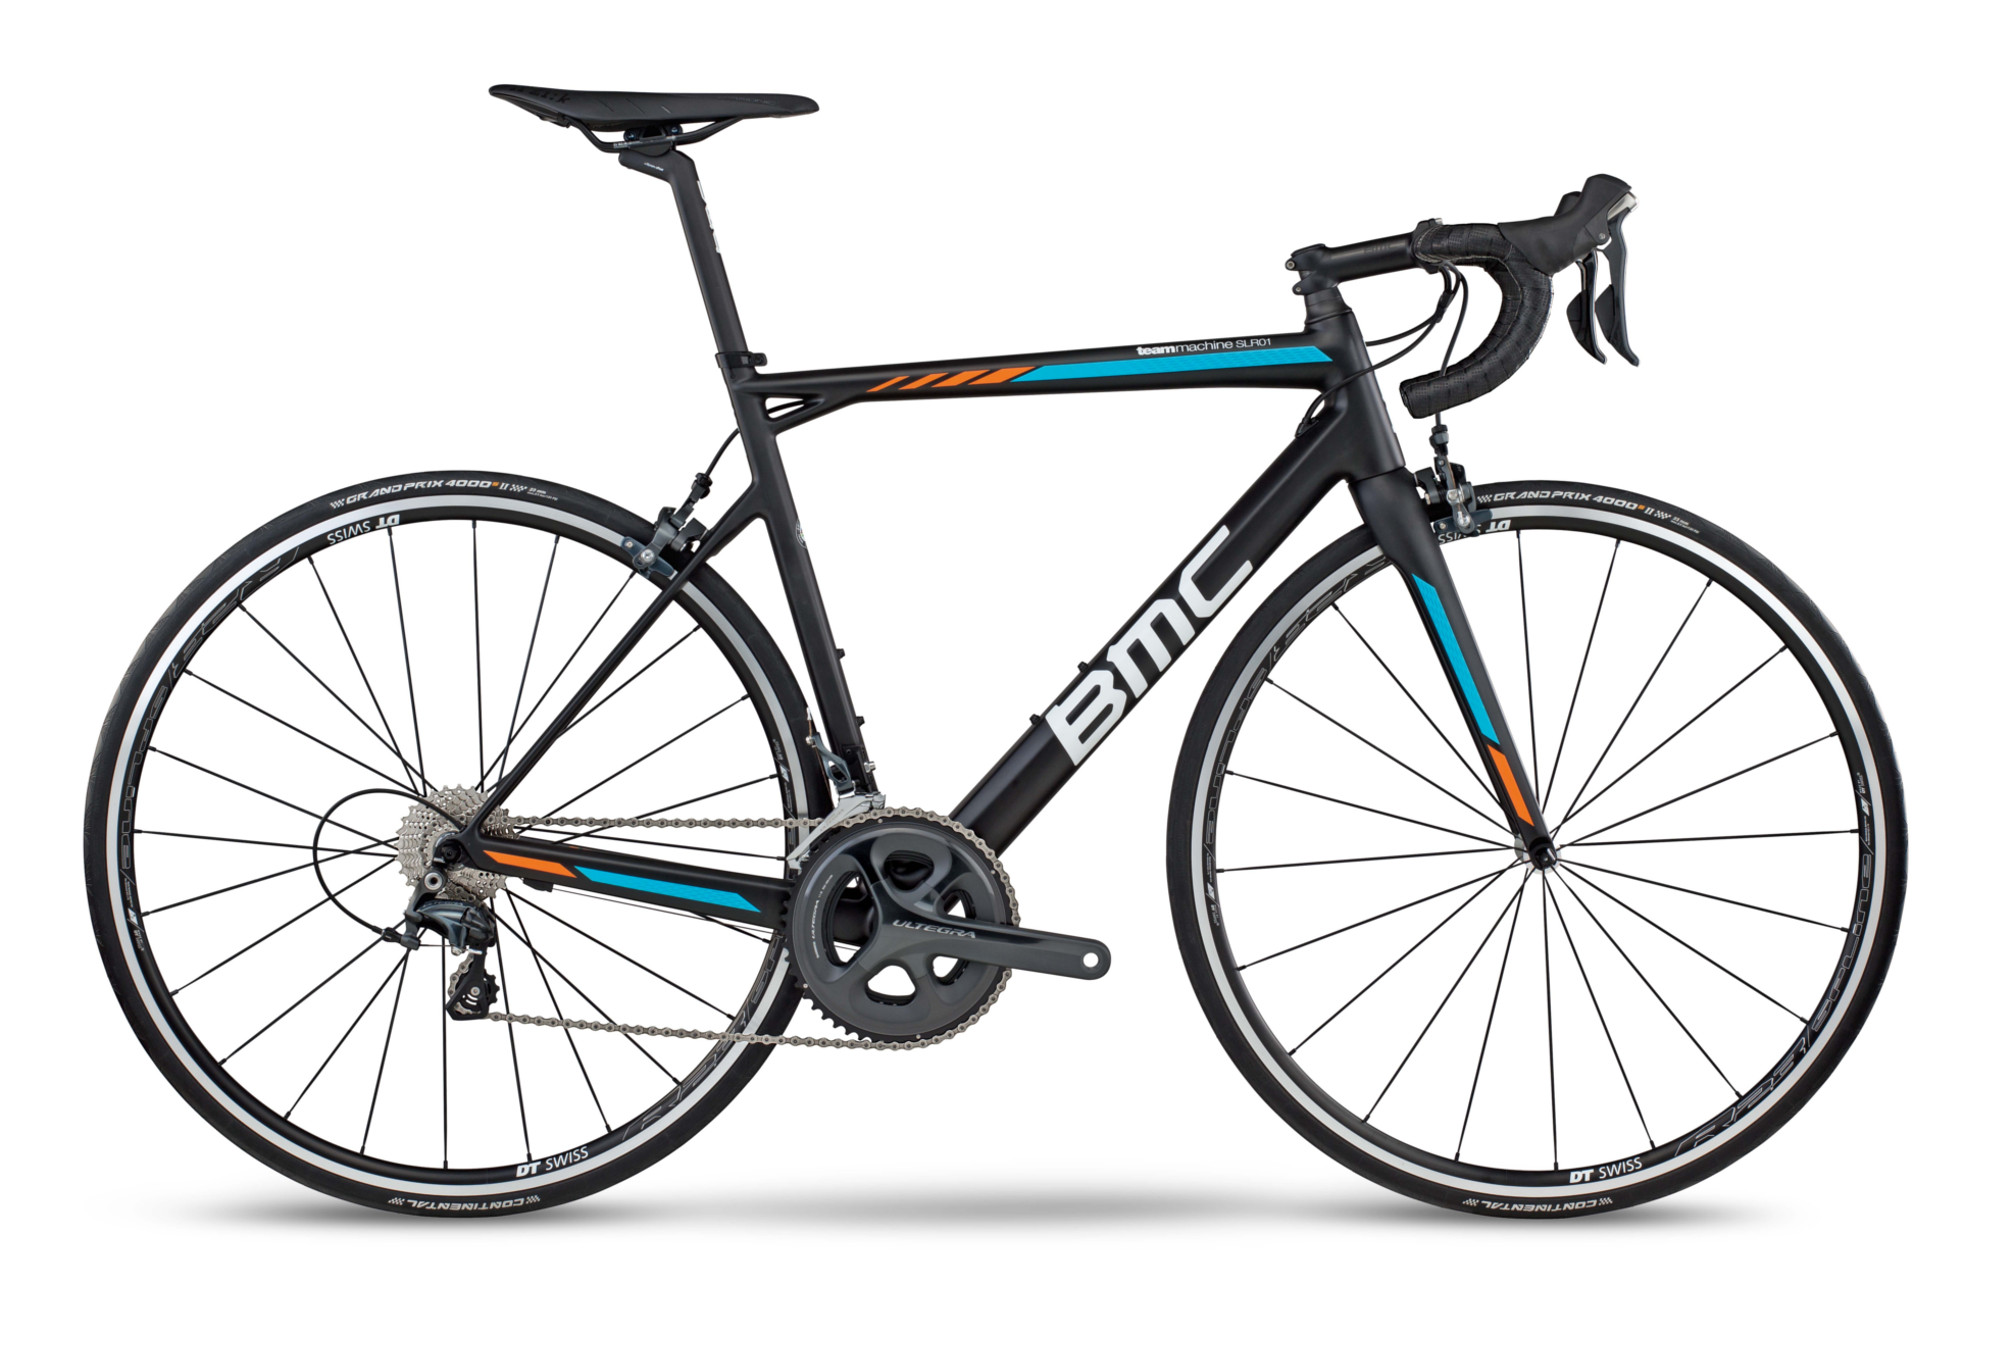 v lo de route bmc teammachine slr01 shimano ultegra 11v 2017 noir bleu orange. Black Bedroom Furniture Sets. Home Design Ideas